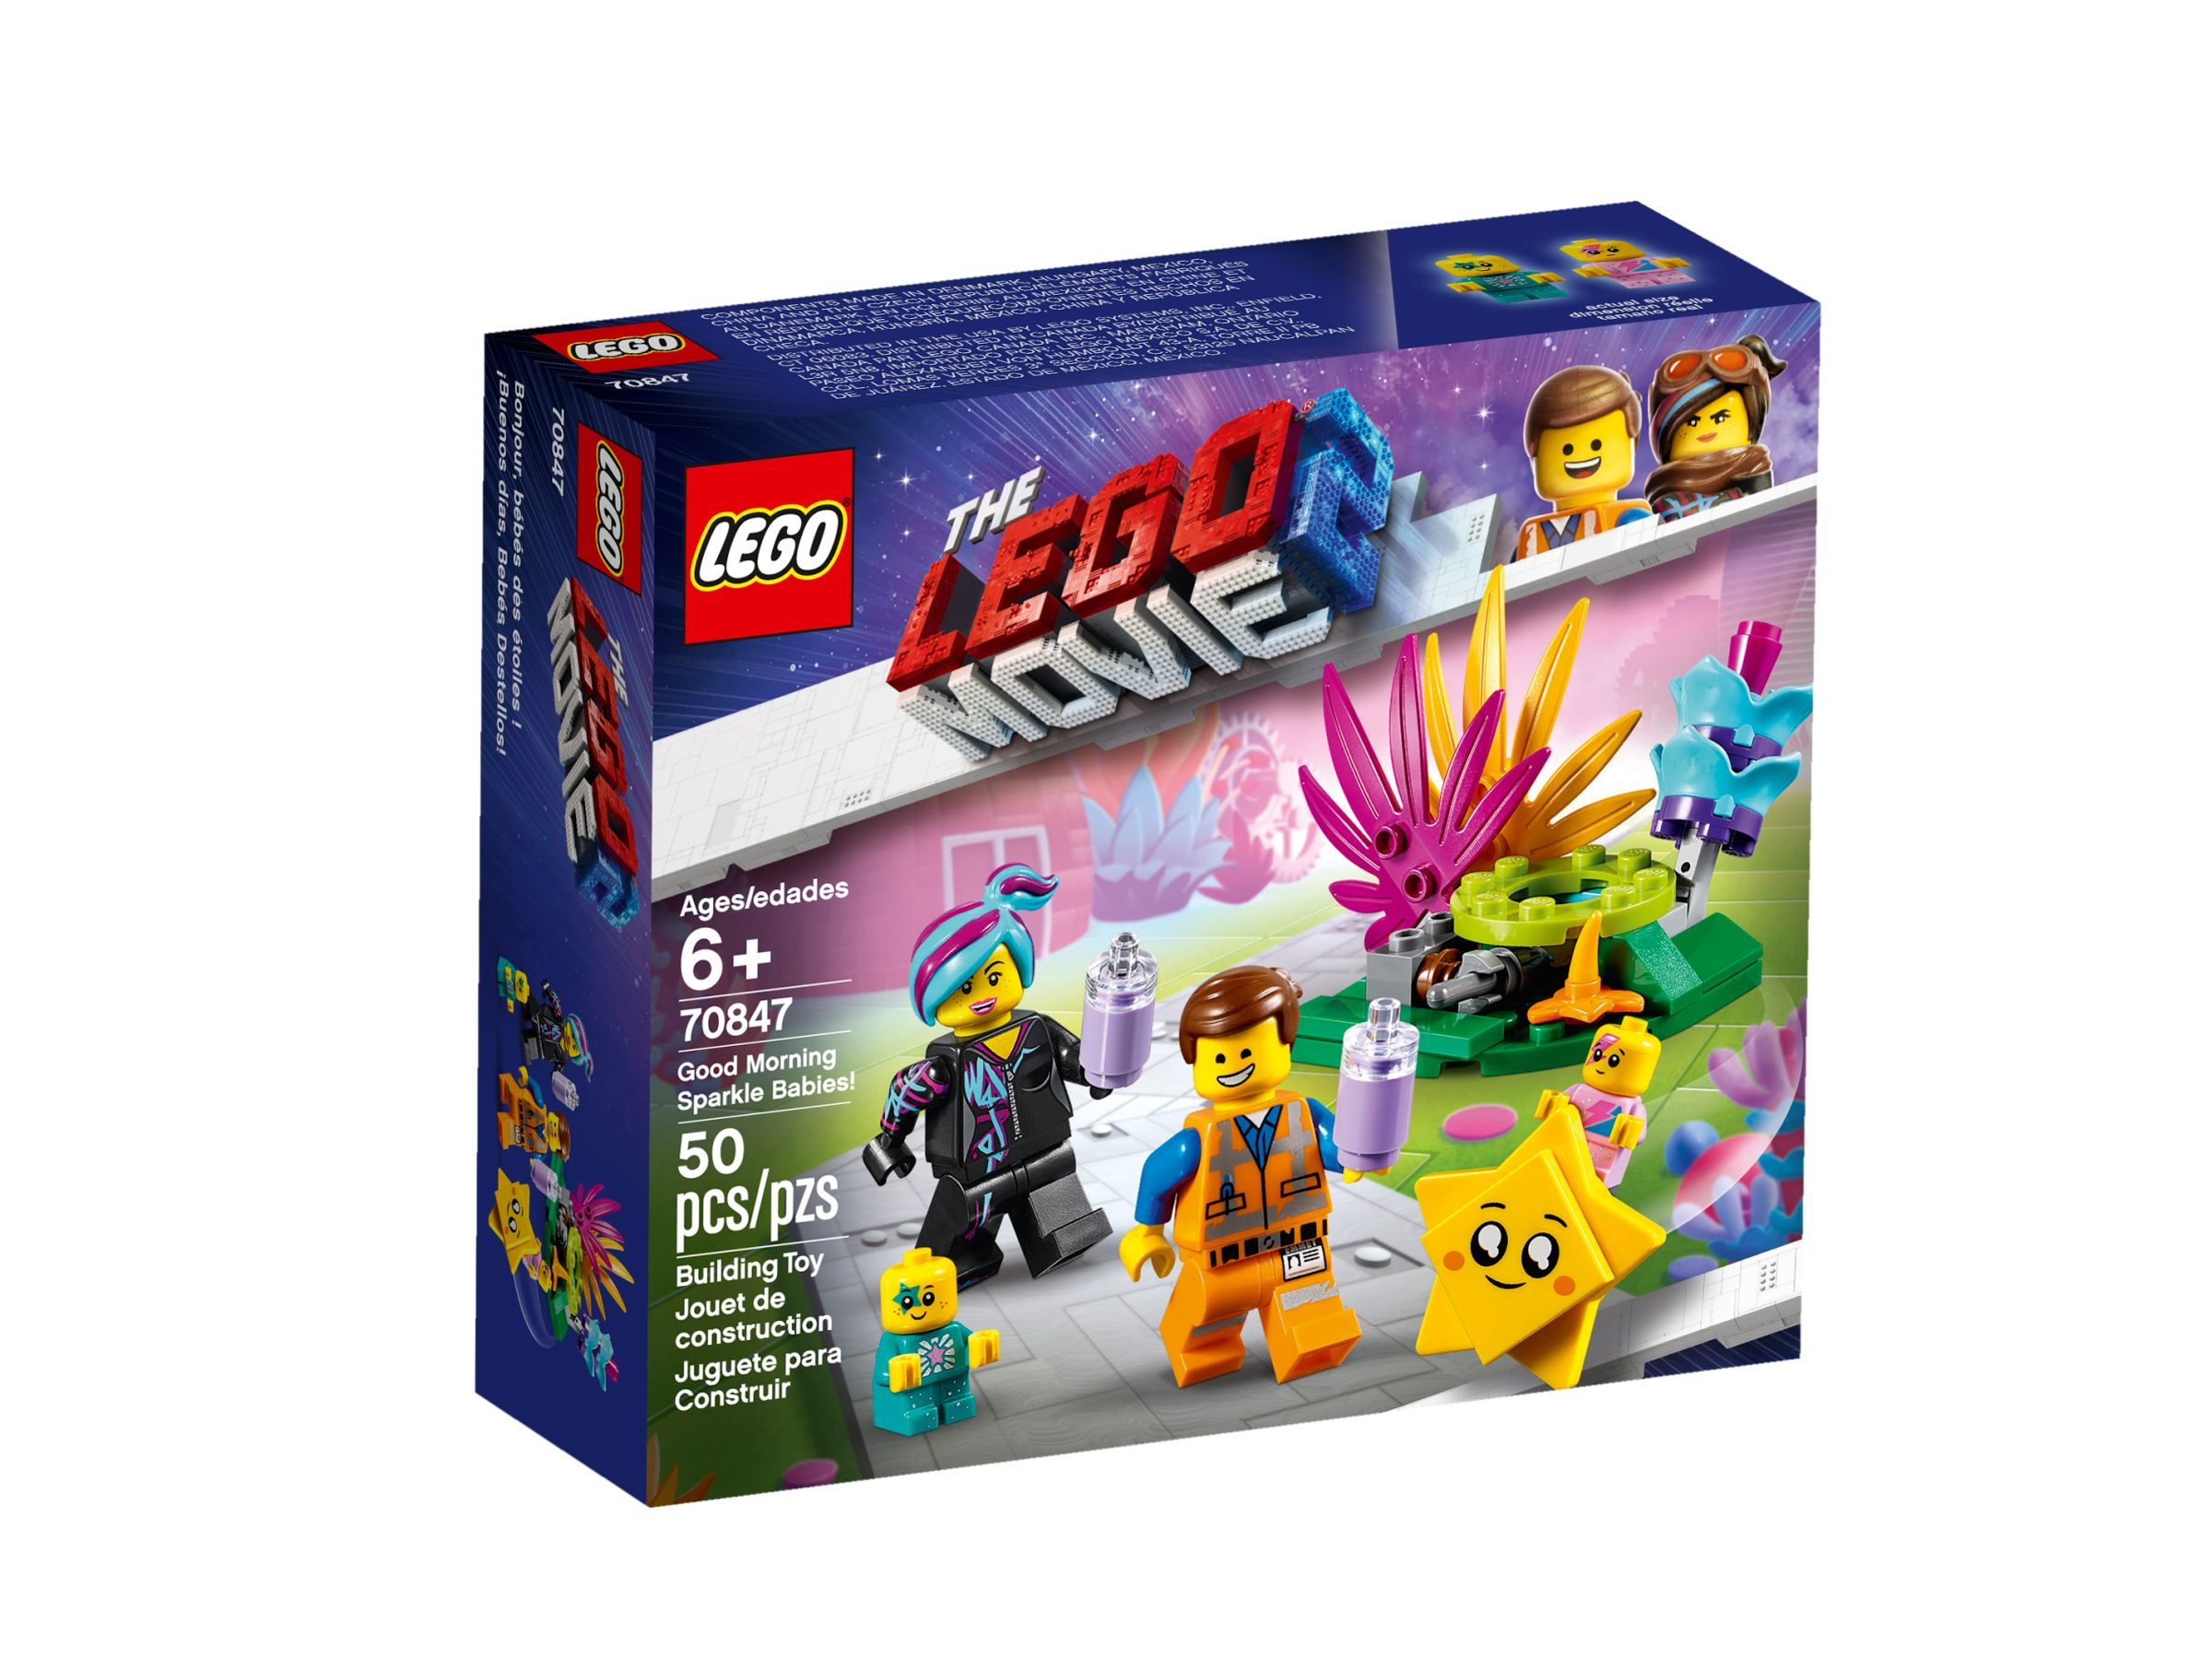 LEGO The Lego Movie 2 70847 Guten Morgen, Glitzerbabys! LEGO_70847_alt1.jpg